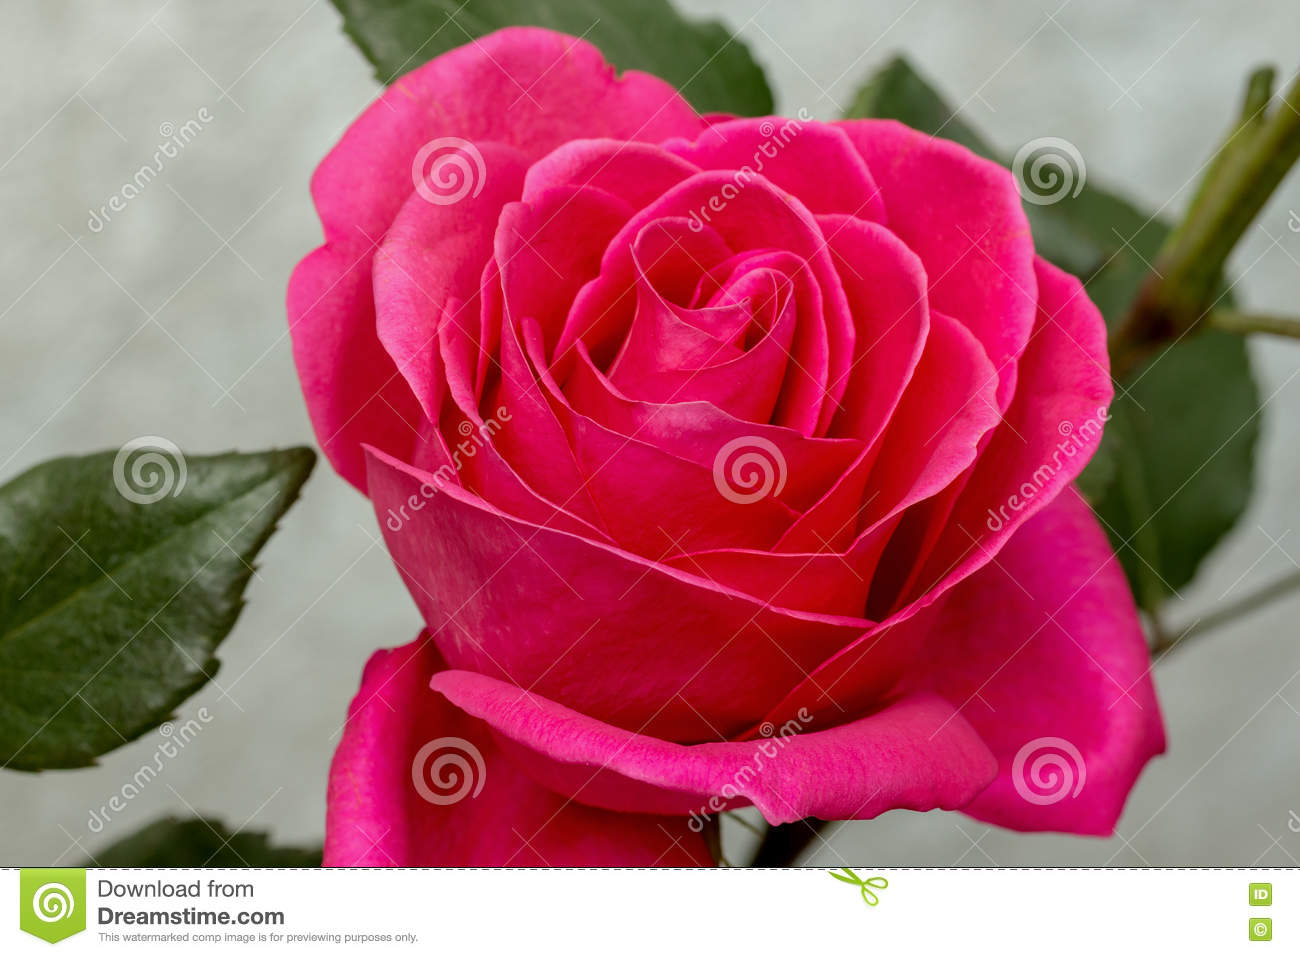 Beautiful flower red rose stock photo image of floral 71222116 download beautiful flower red rose stock photo image of floral 71222116 download comp izmirmasajfo